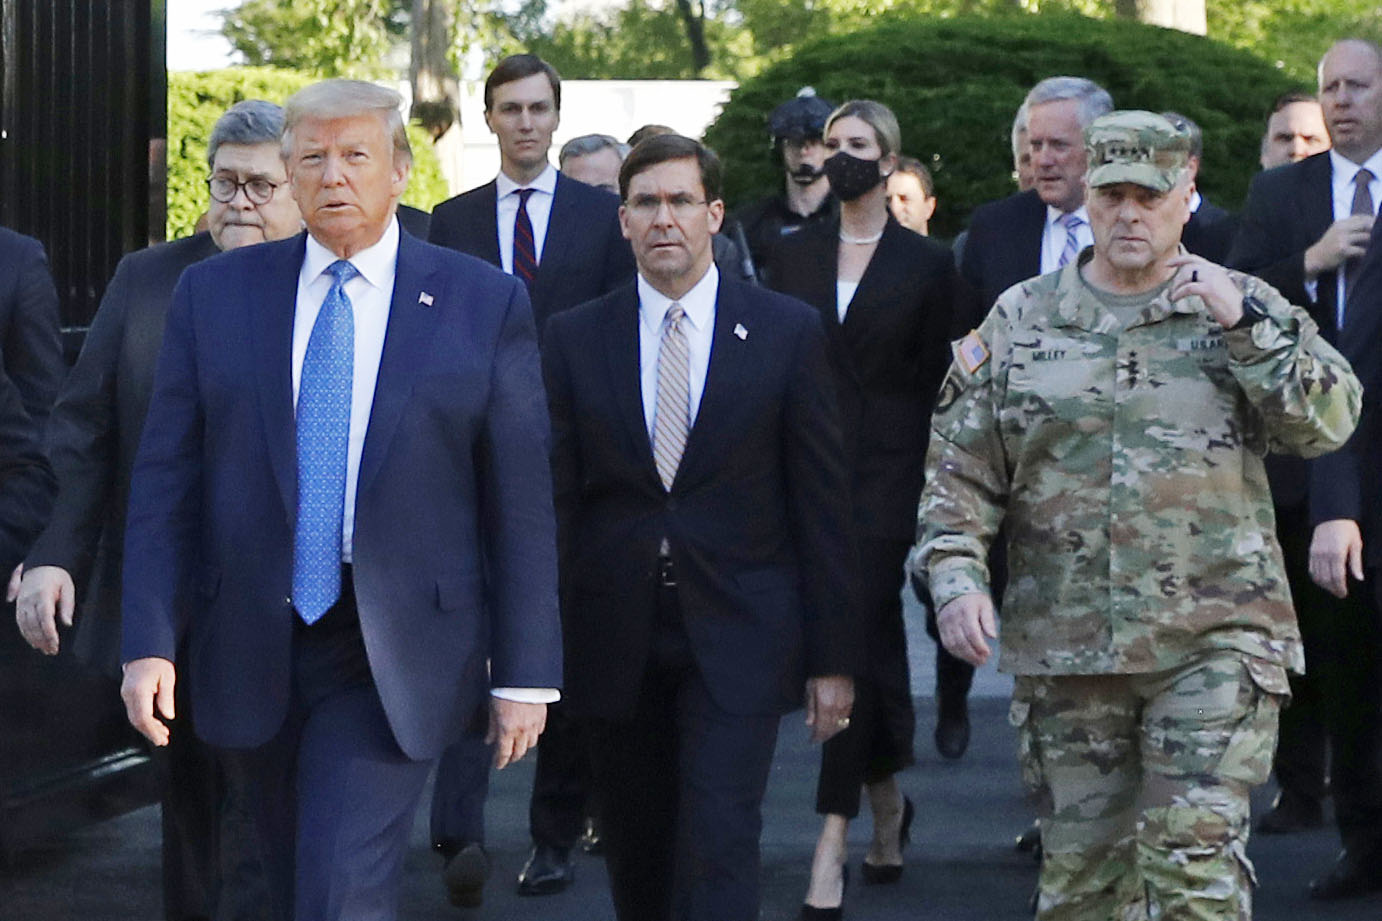 President Donald Trump departs the White House to take a photo outside St. John's Church in Washington on June 1. Walking behind Trump are Secretary of Defense Mark Esper, center, and Chairman of the Joint Chiefs of Staff Gen. Mark Milley, right.